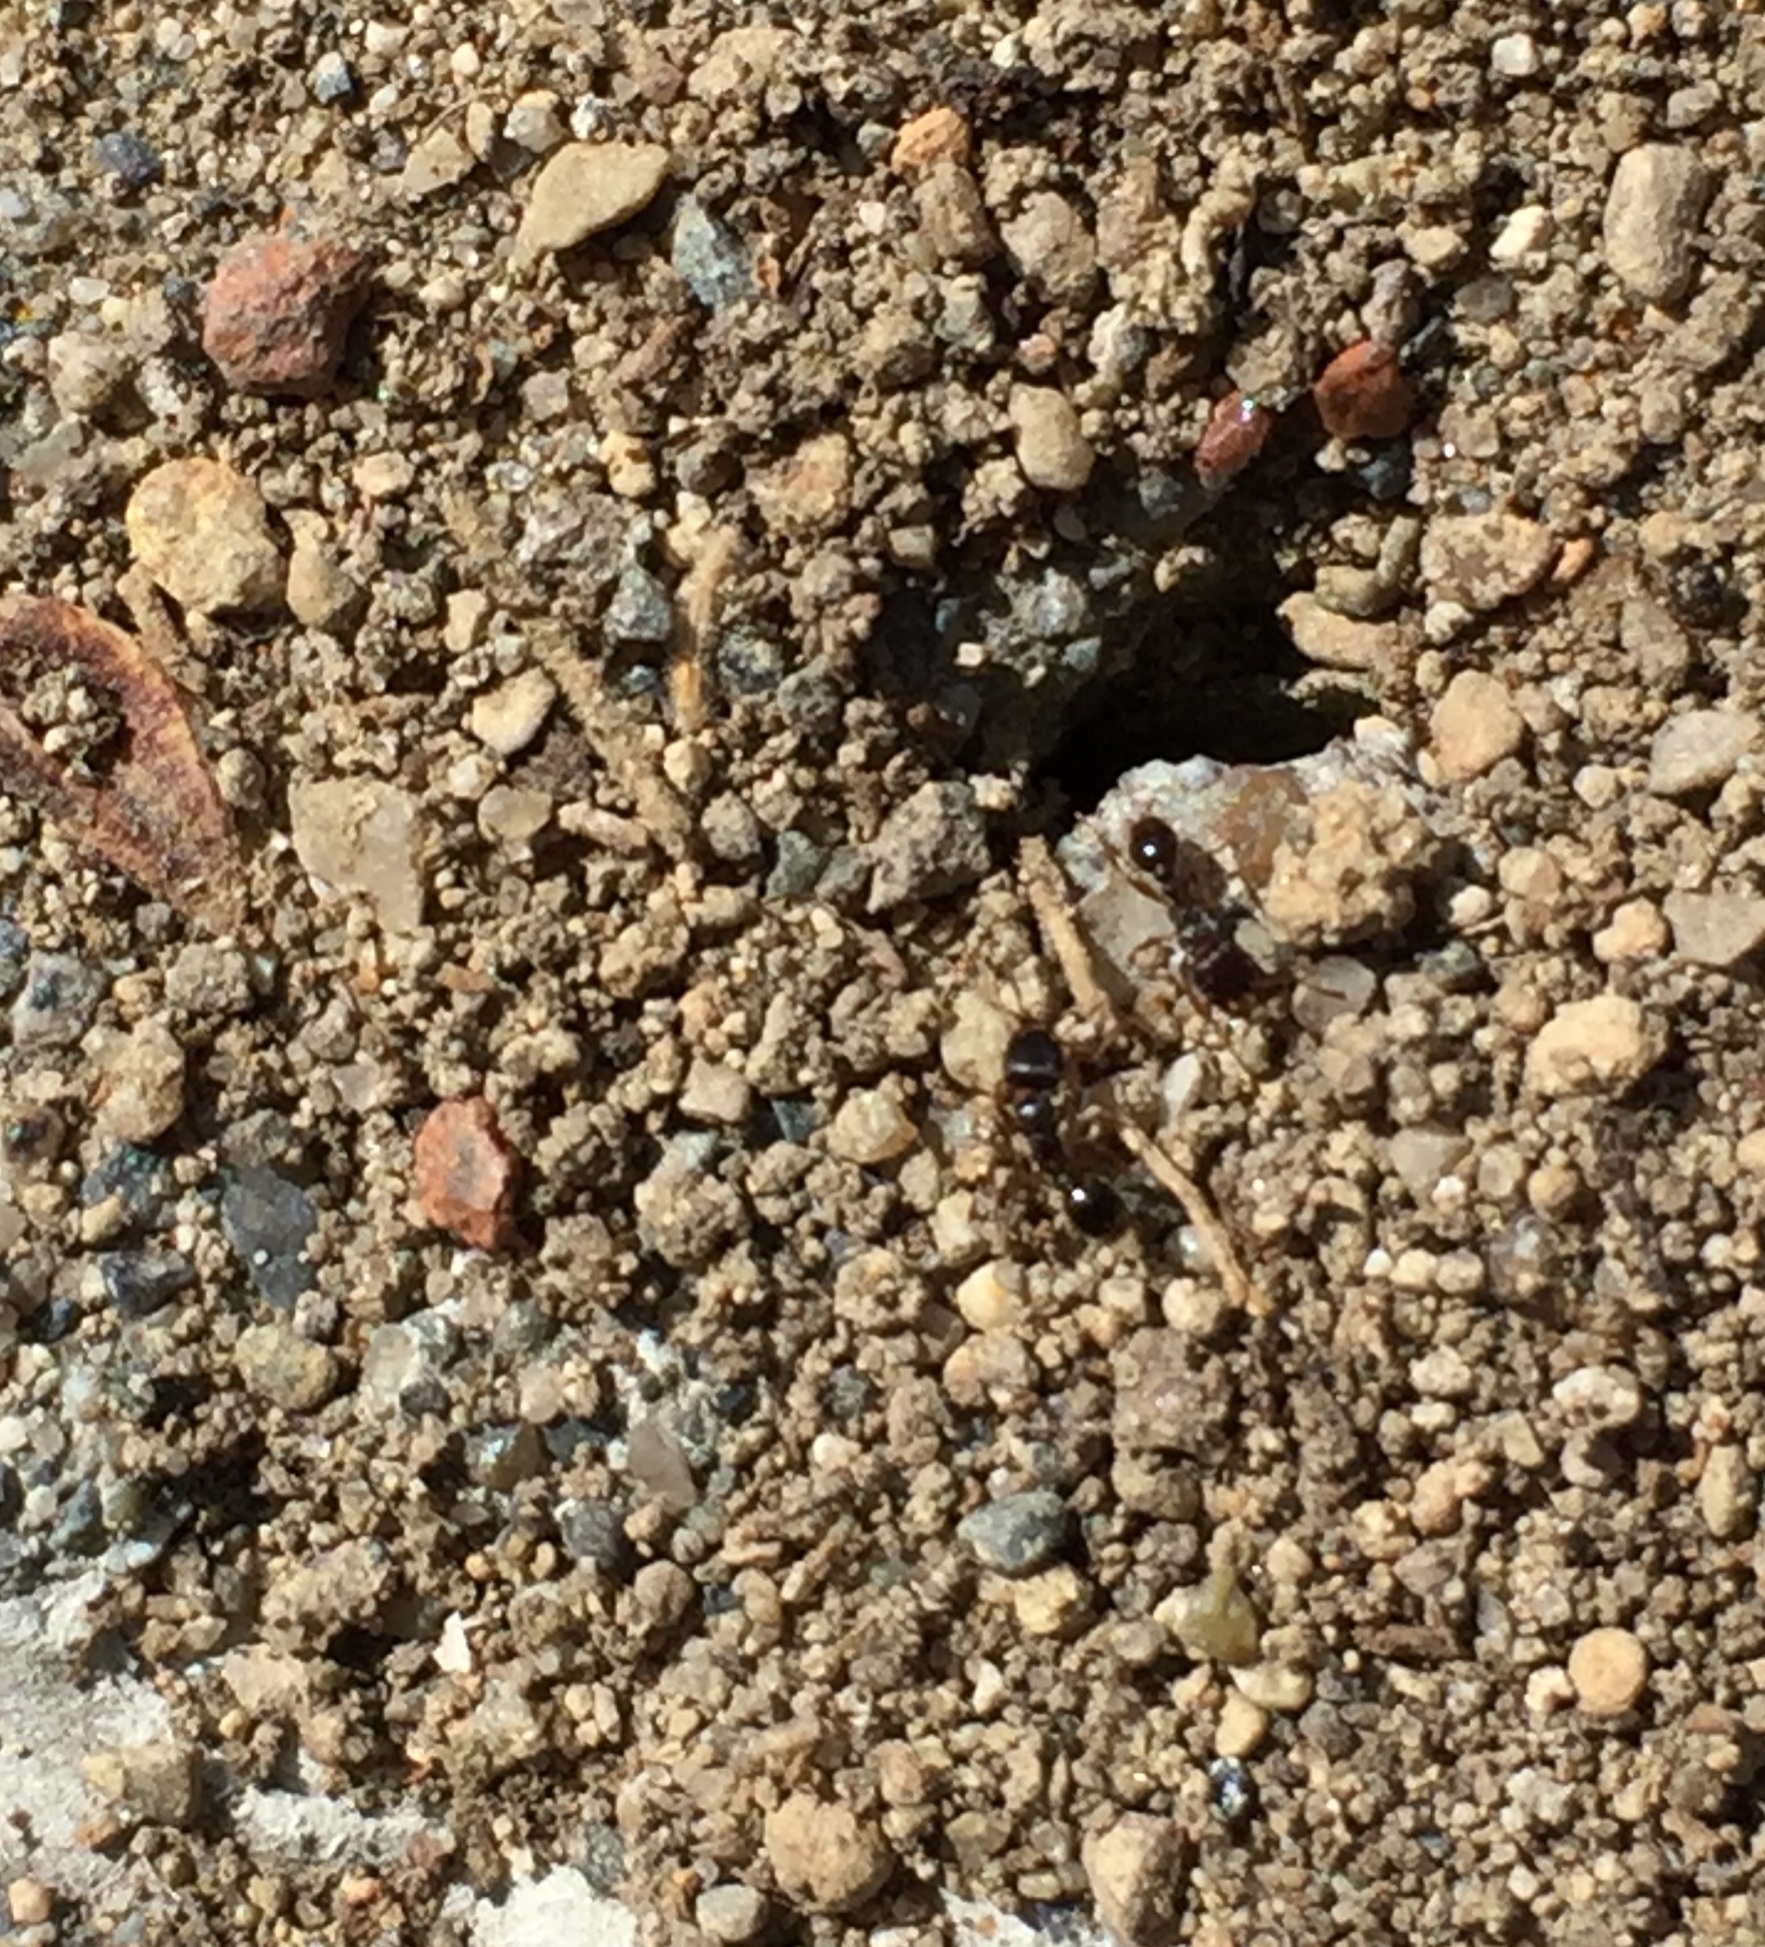 Pavement ants on their patio mound